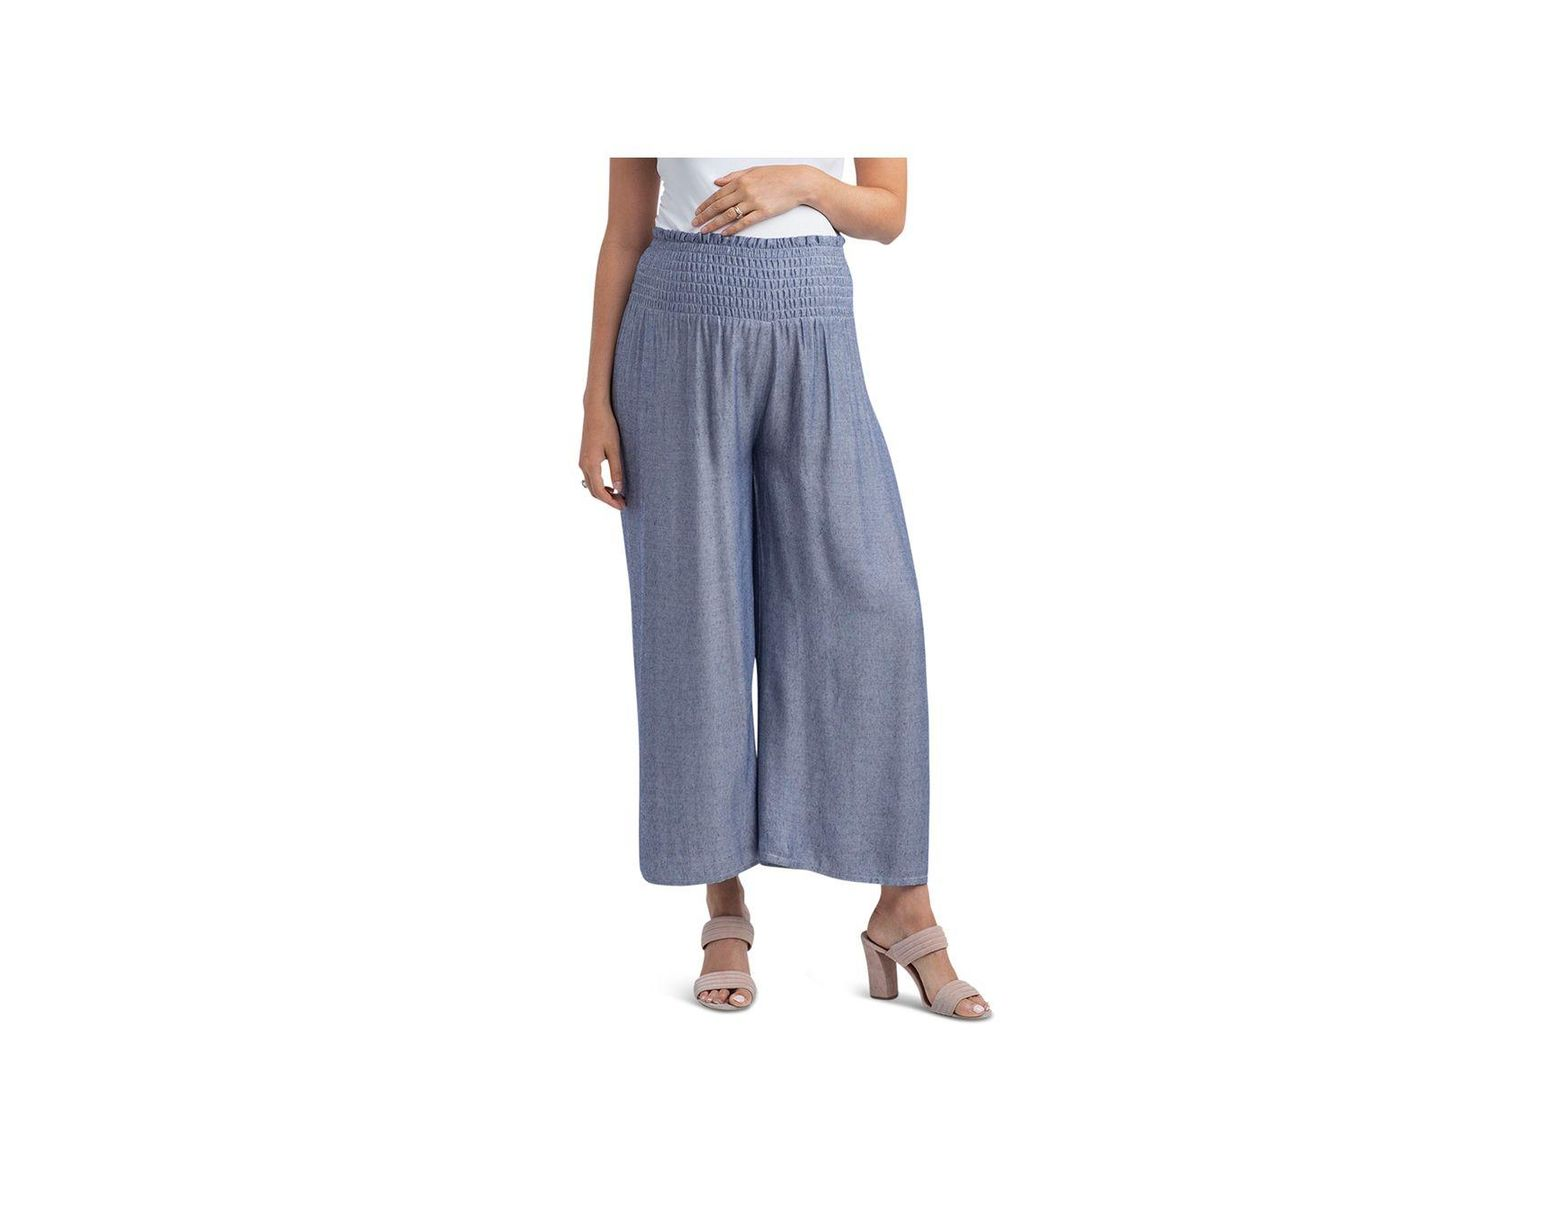 fdc24097c4b68 Nom Maternity Corsica Smocked Wide - Leg Maternity Pants in Blue - Lyst